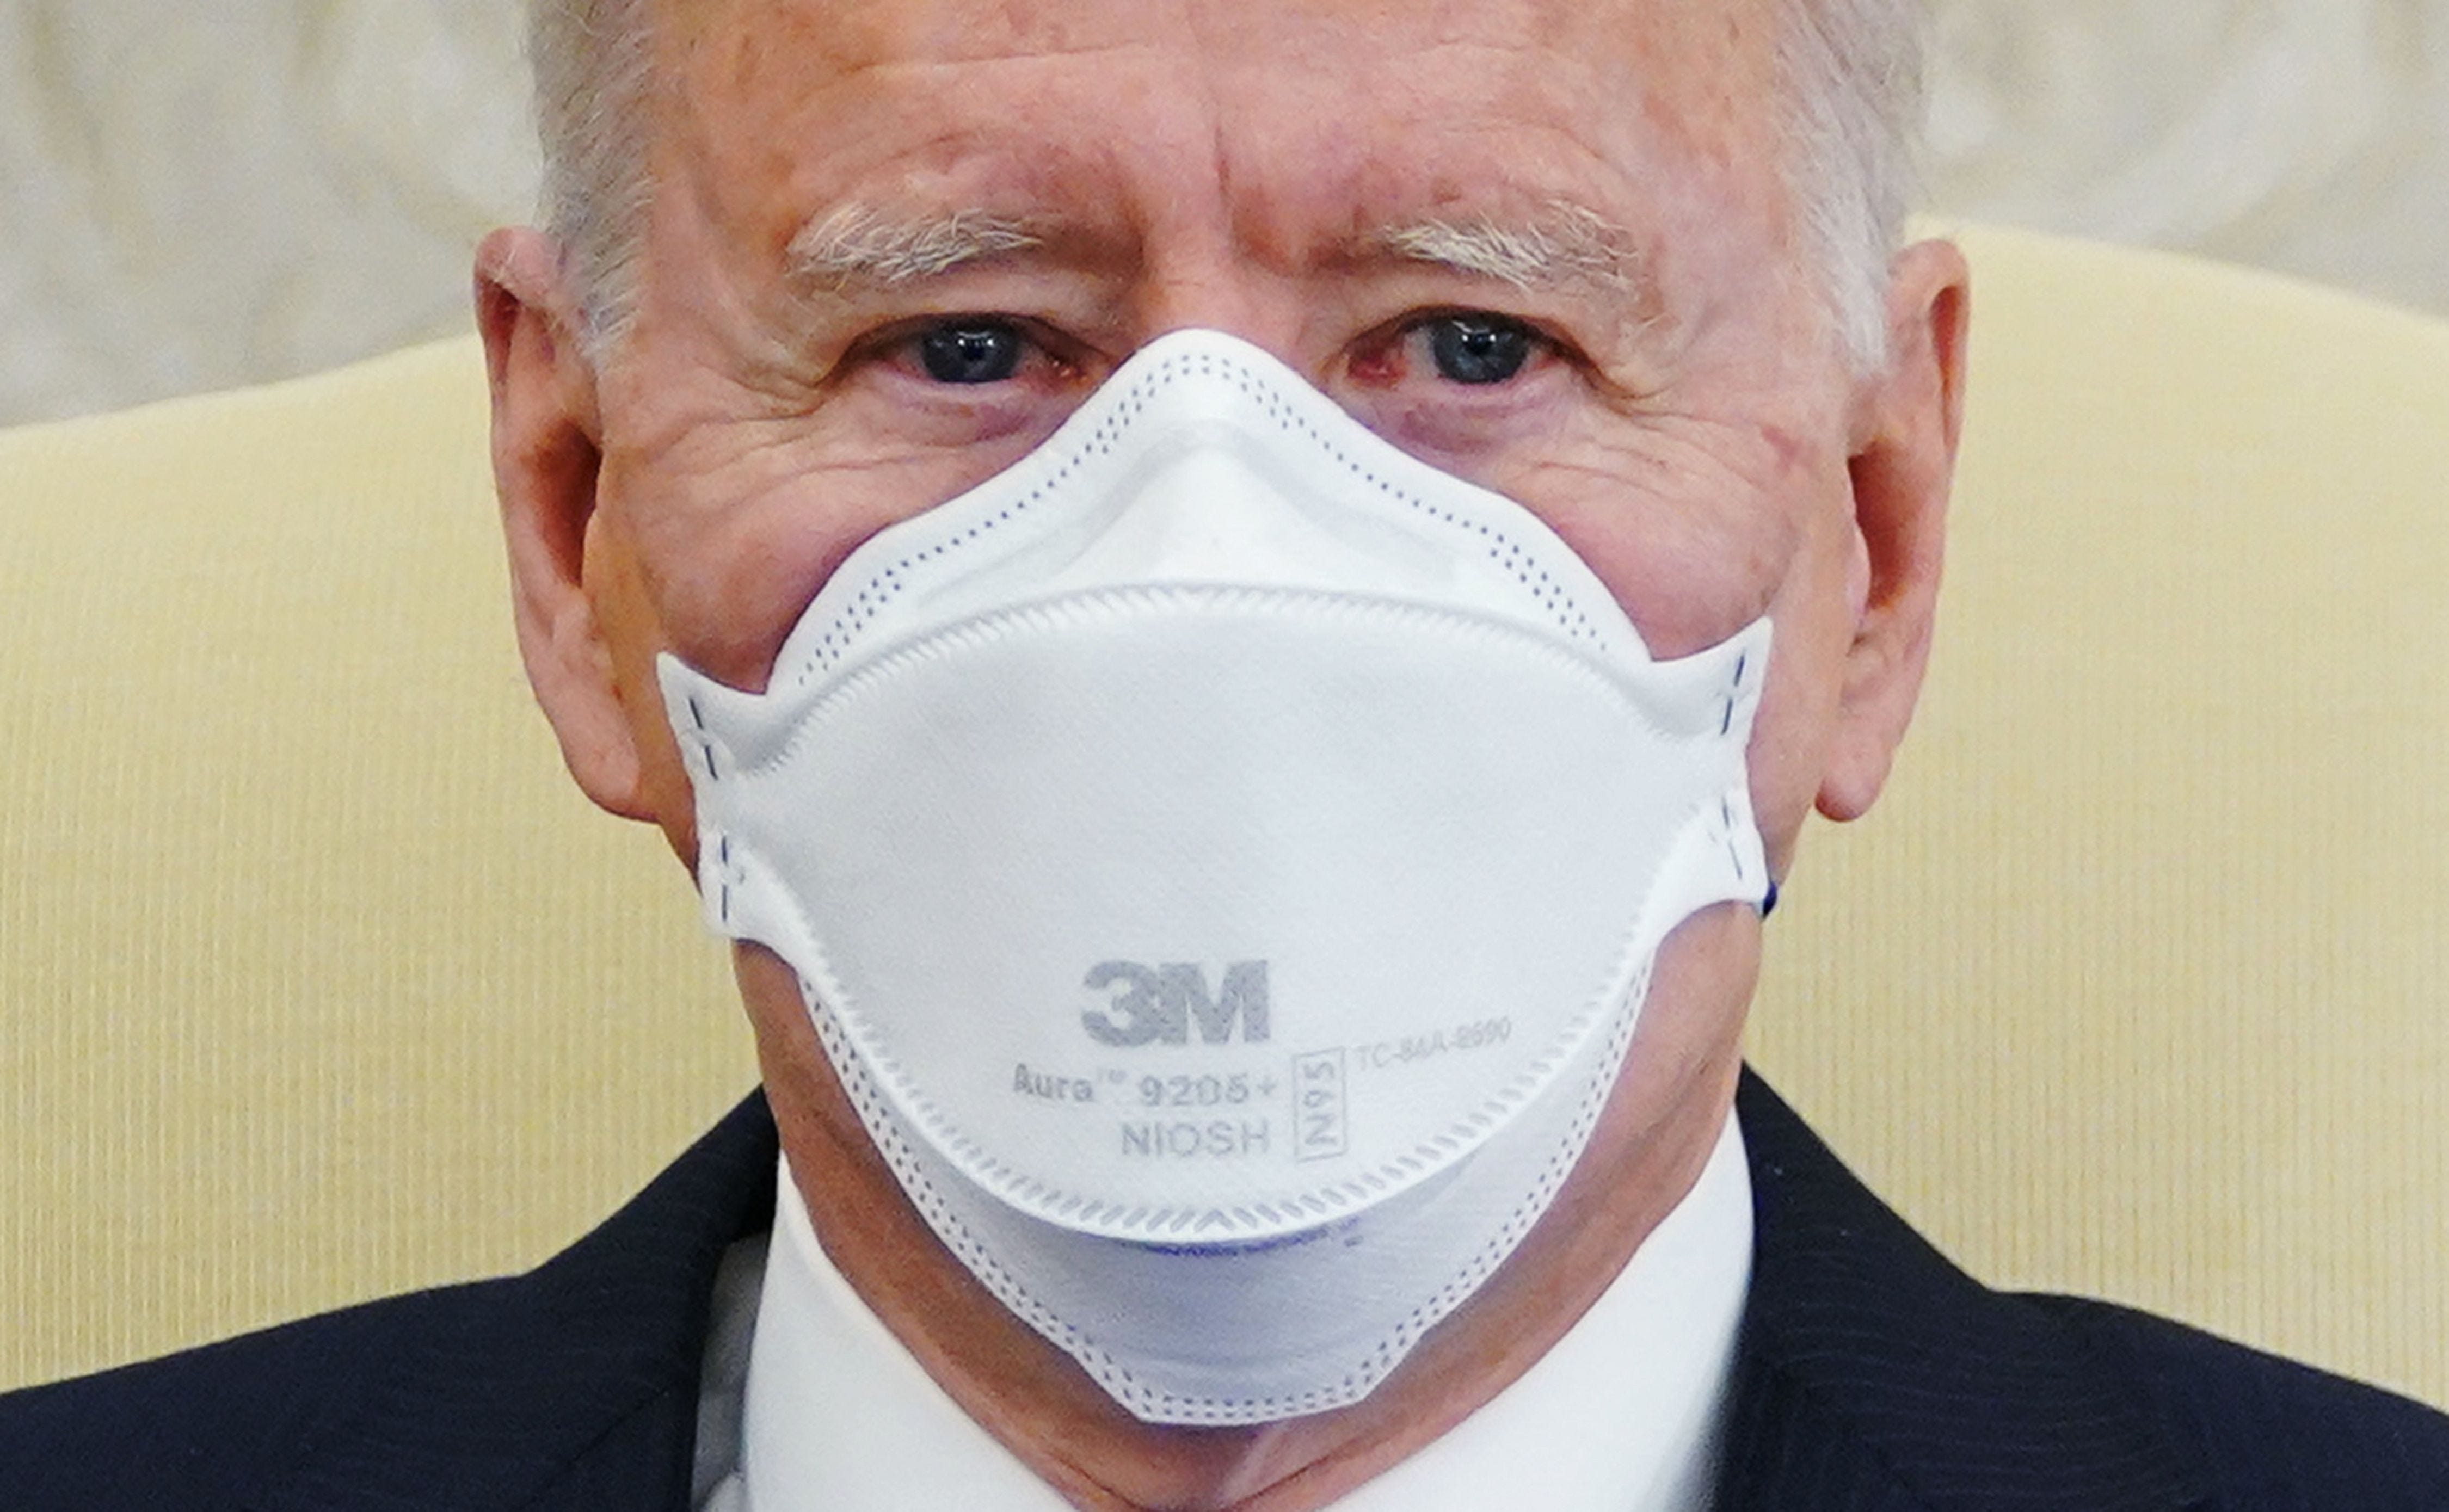 Biden administration to deliver more than 25 million masks to health centers, food pantries